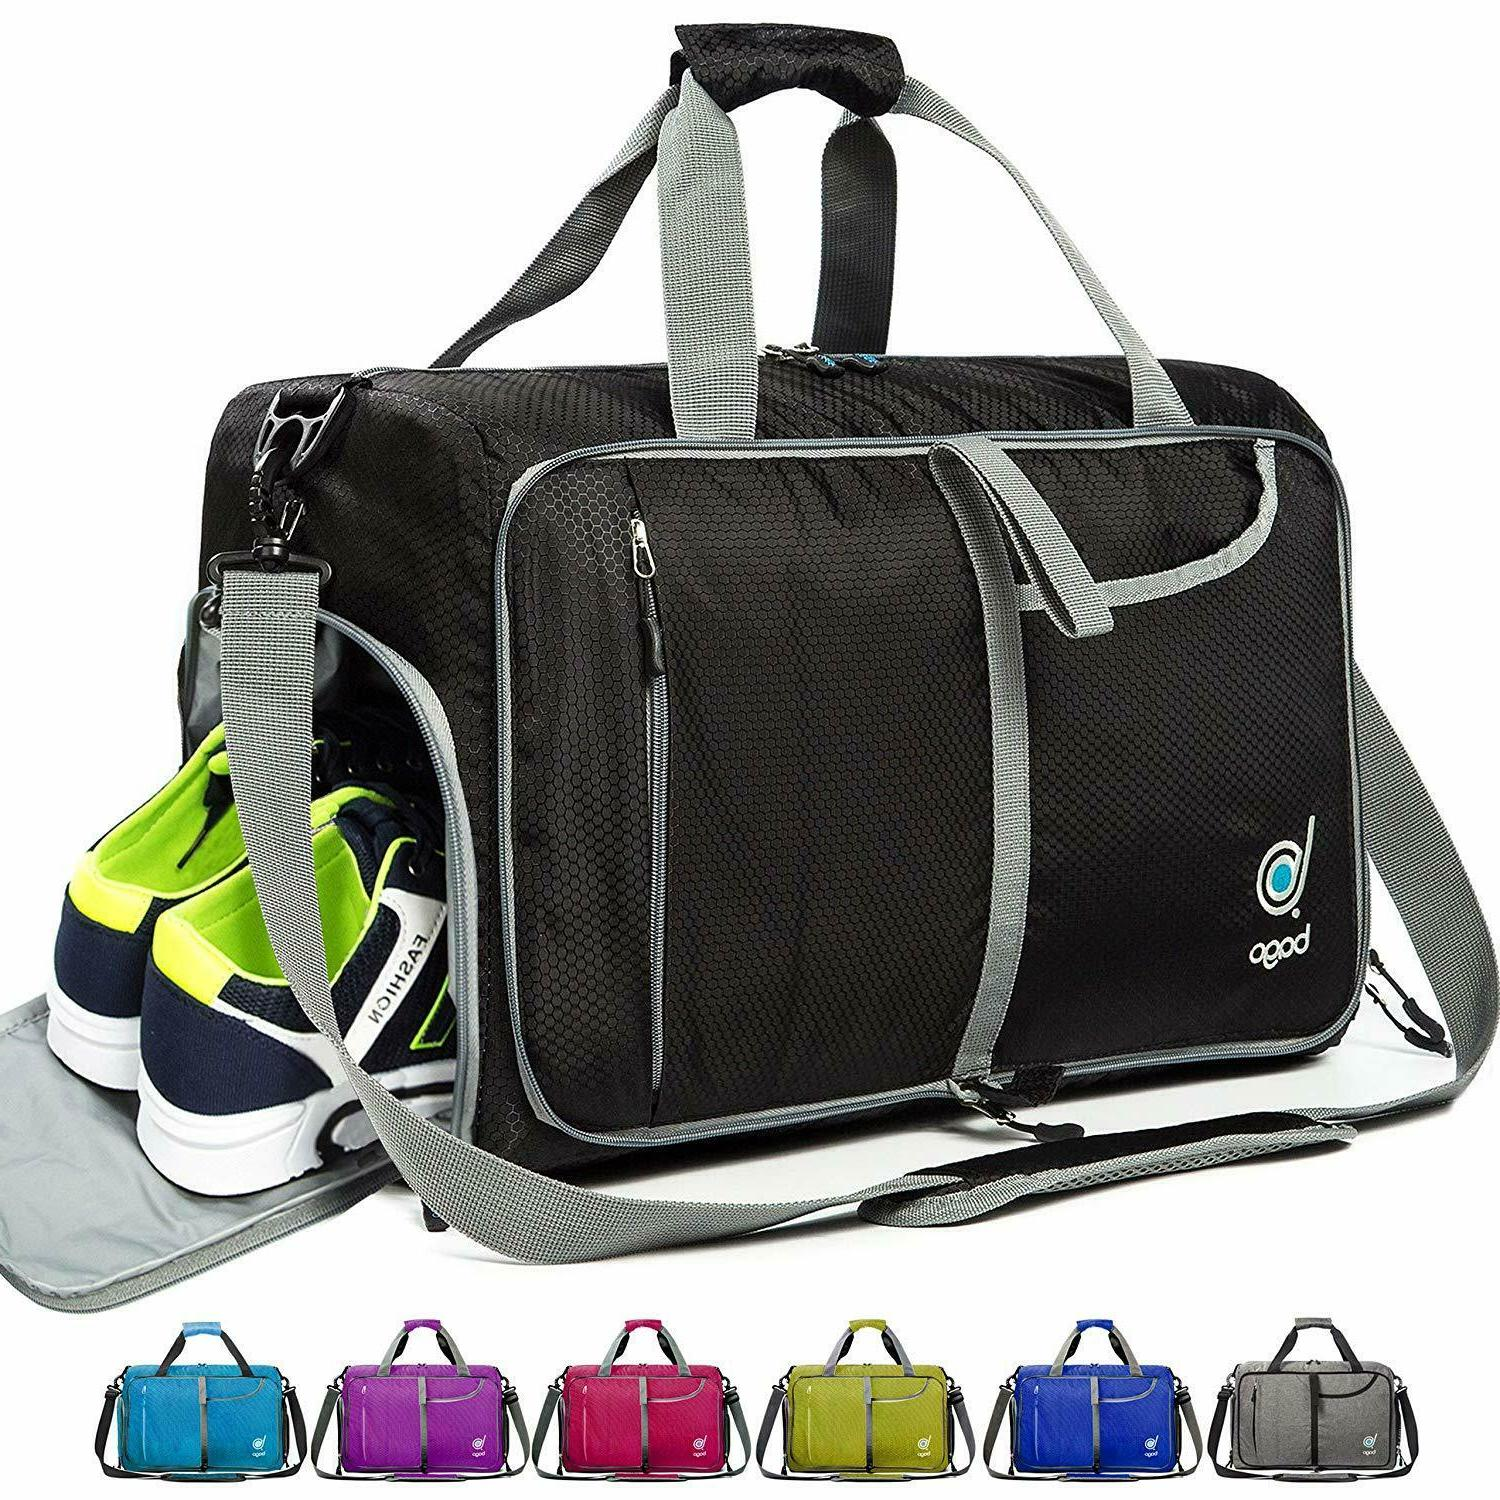 40l duffle bags for men and women